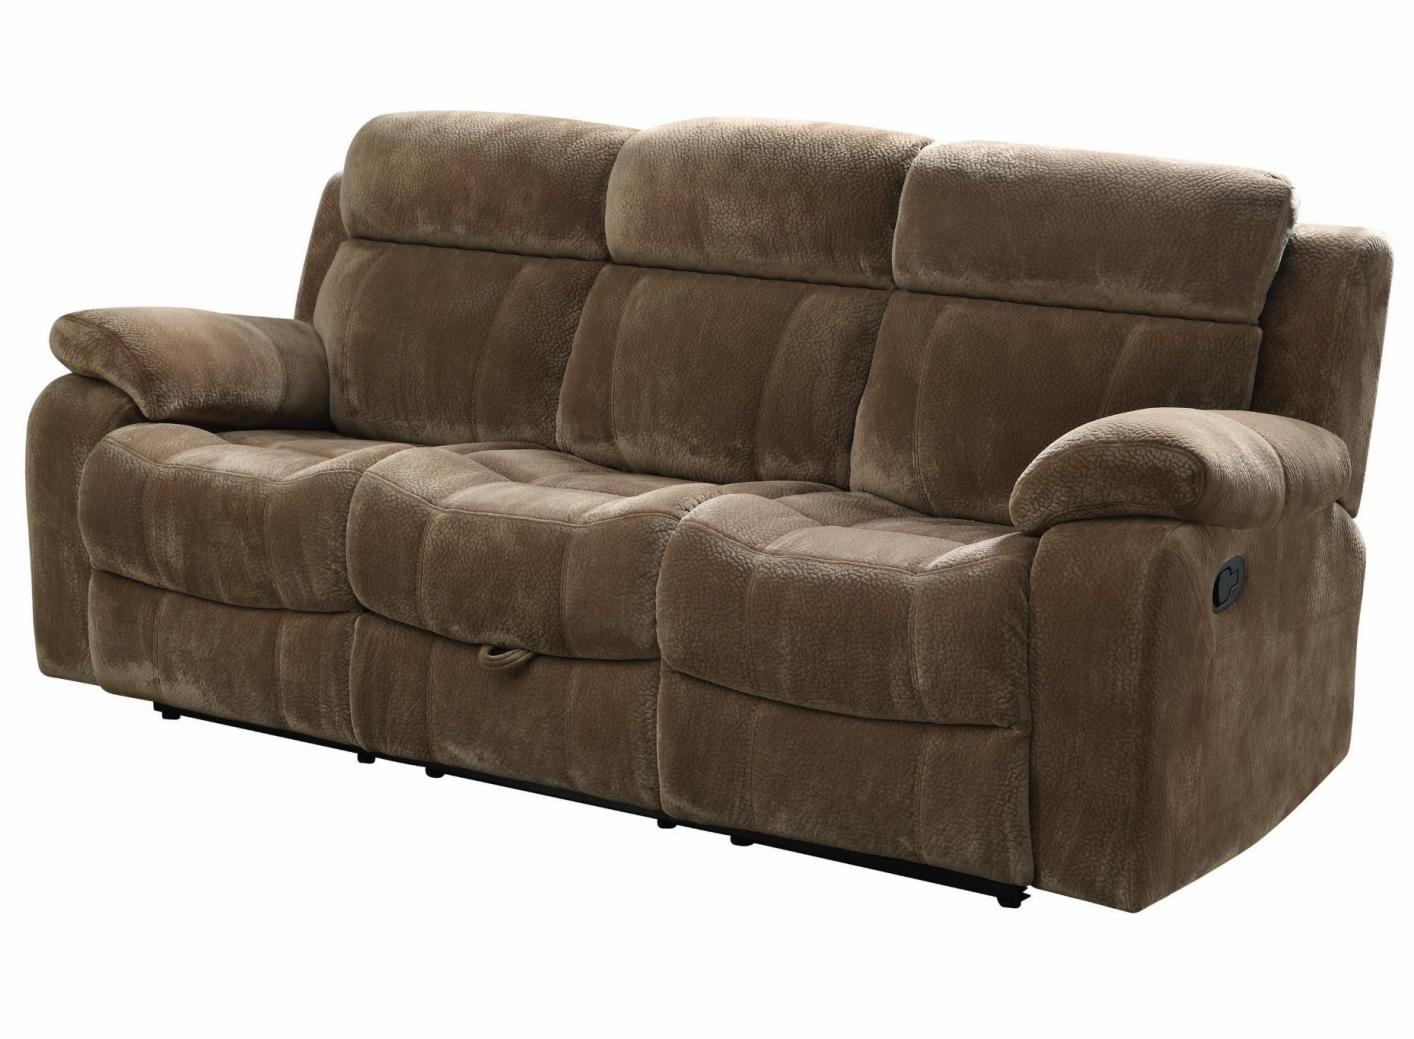 Brown fabric reclining sofa steal a sofa furniture for Furniture 90036